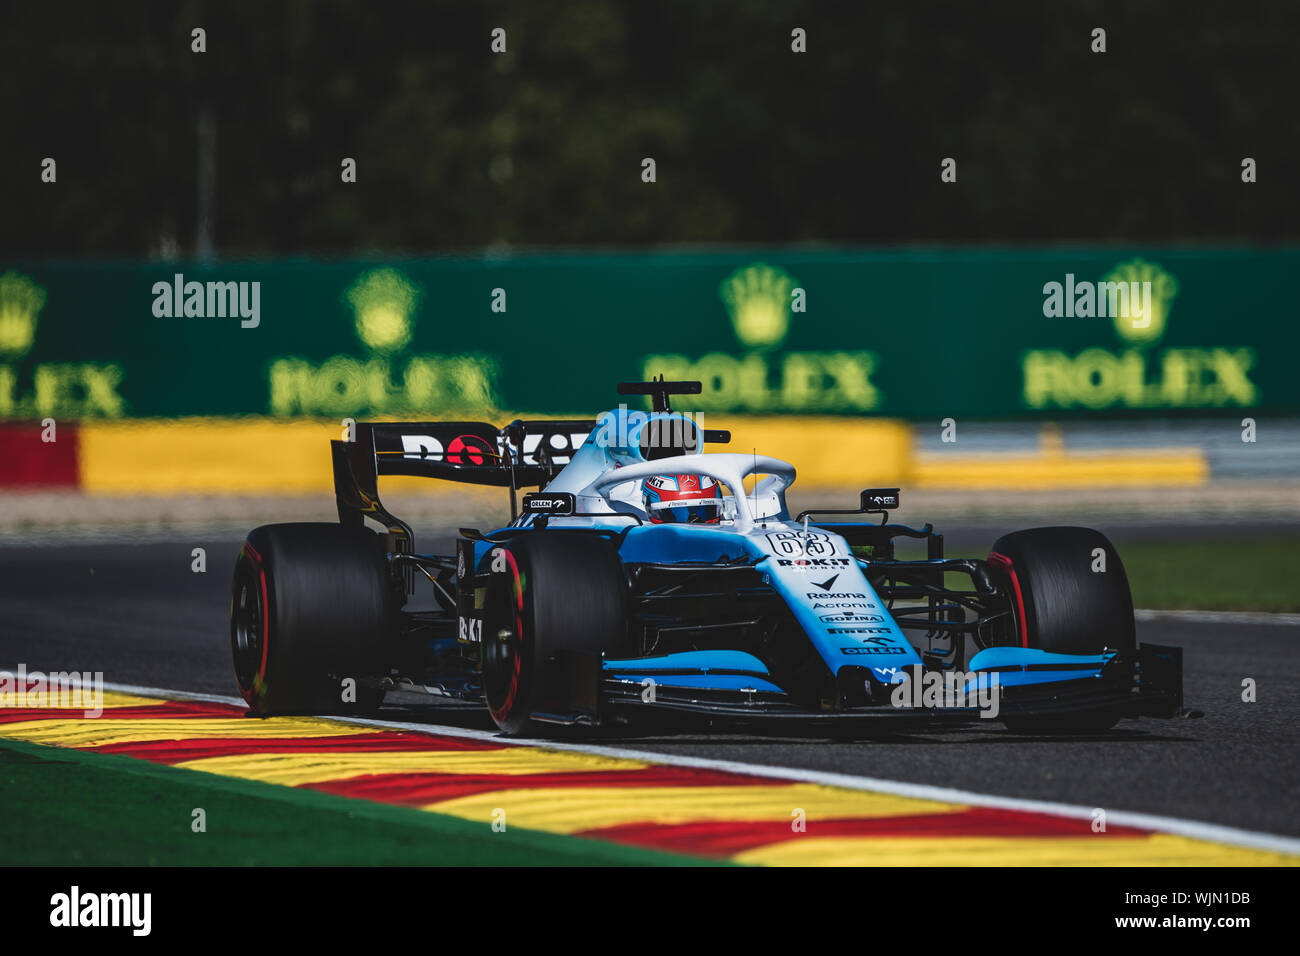 #63, George Russell, GBR, Williams,  in action during the Belgian Grand Prix at Spa Francorchamps - Stock Photo